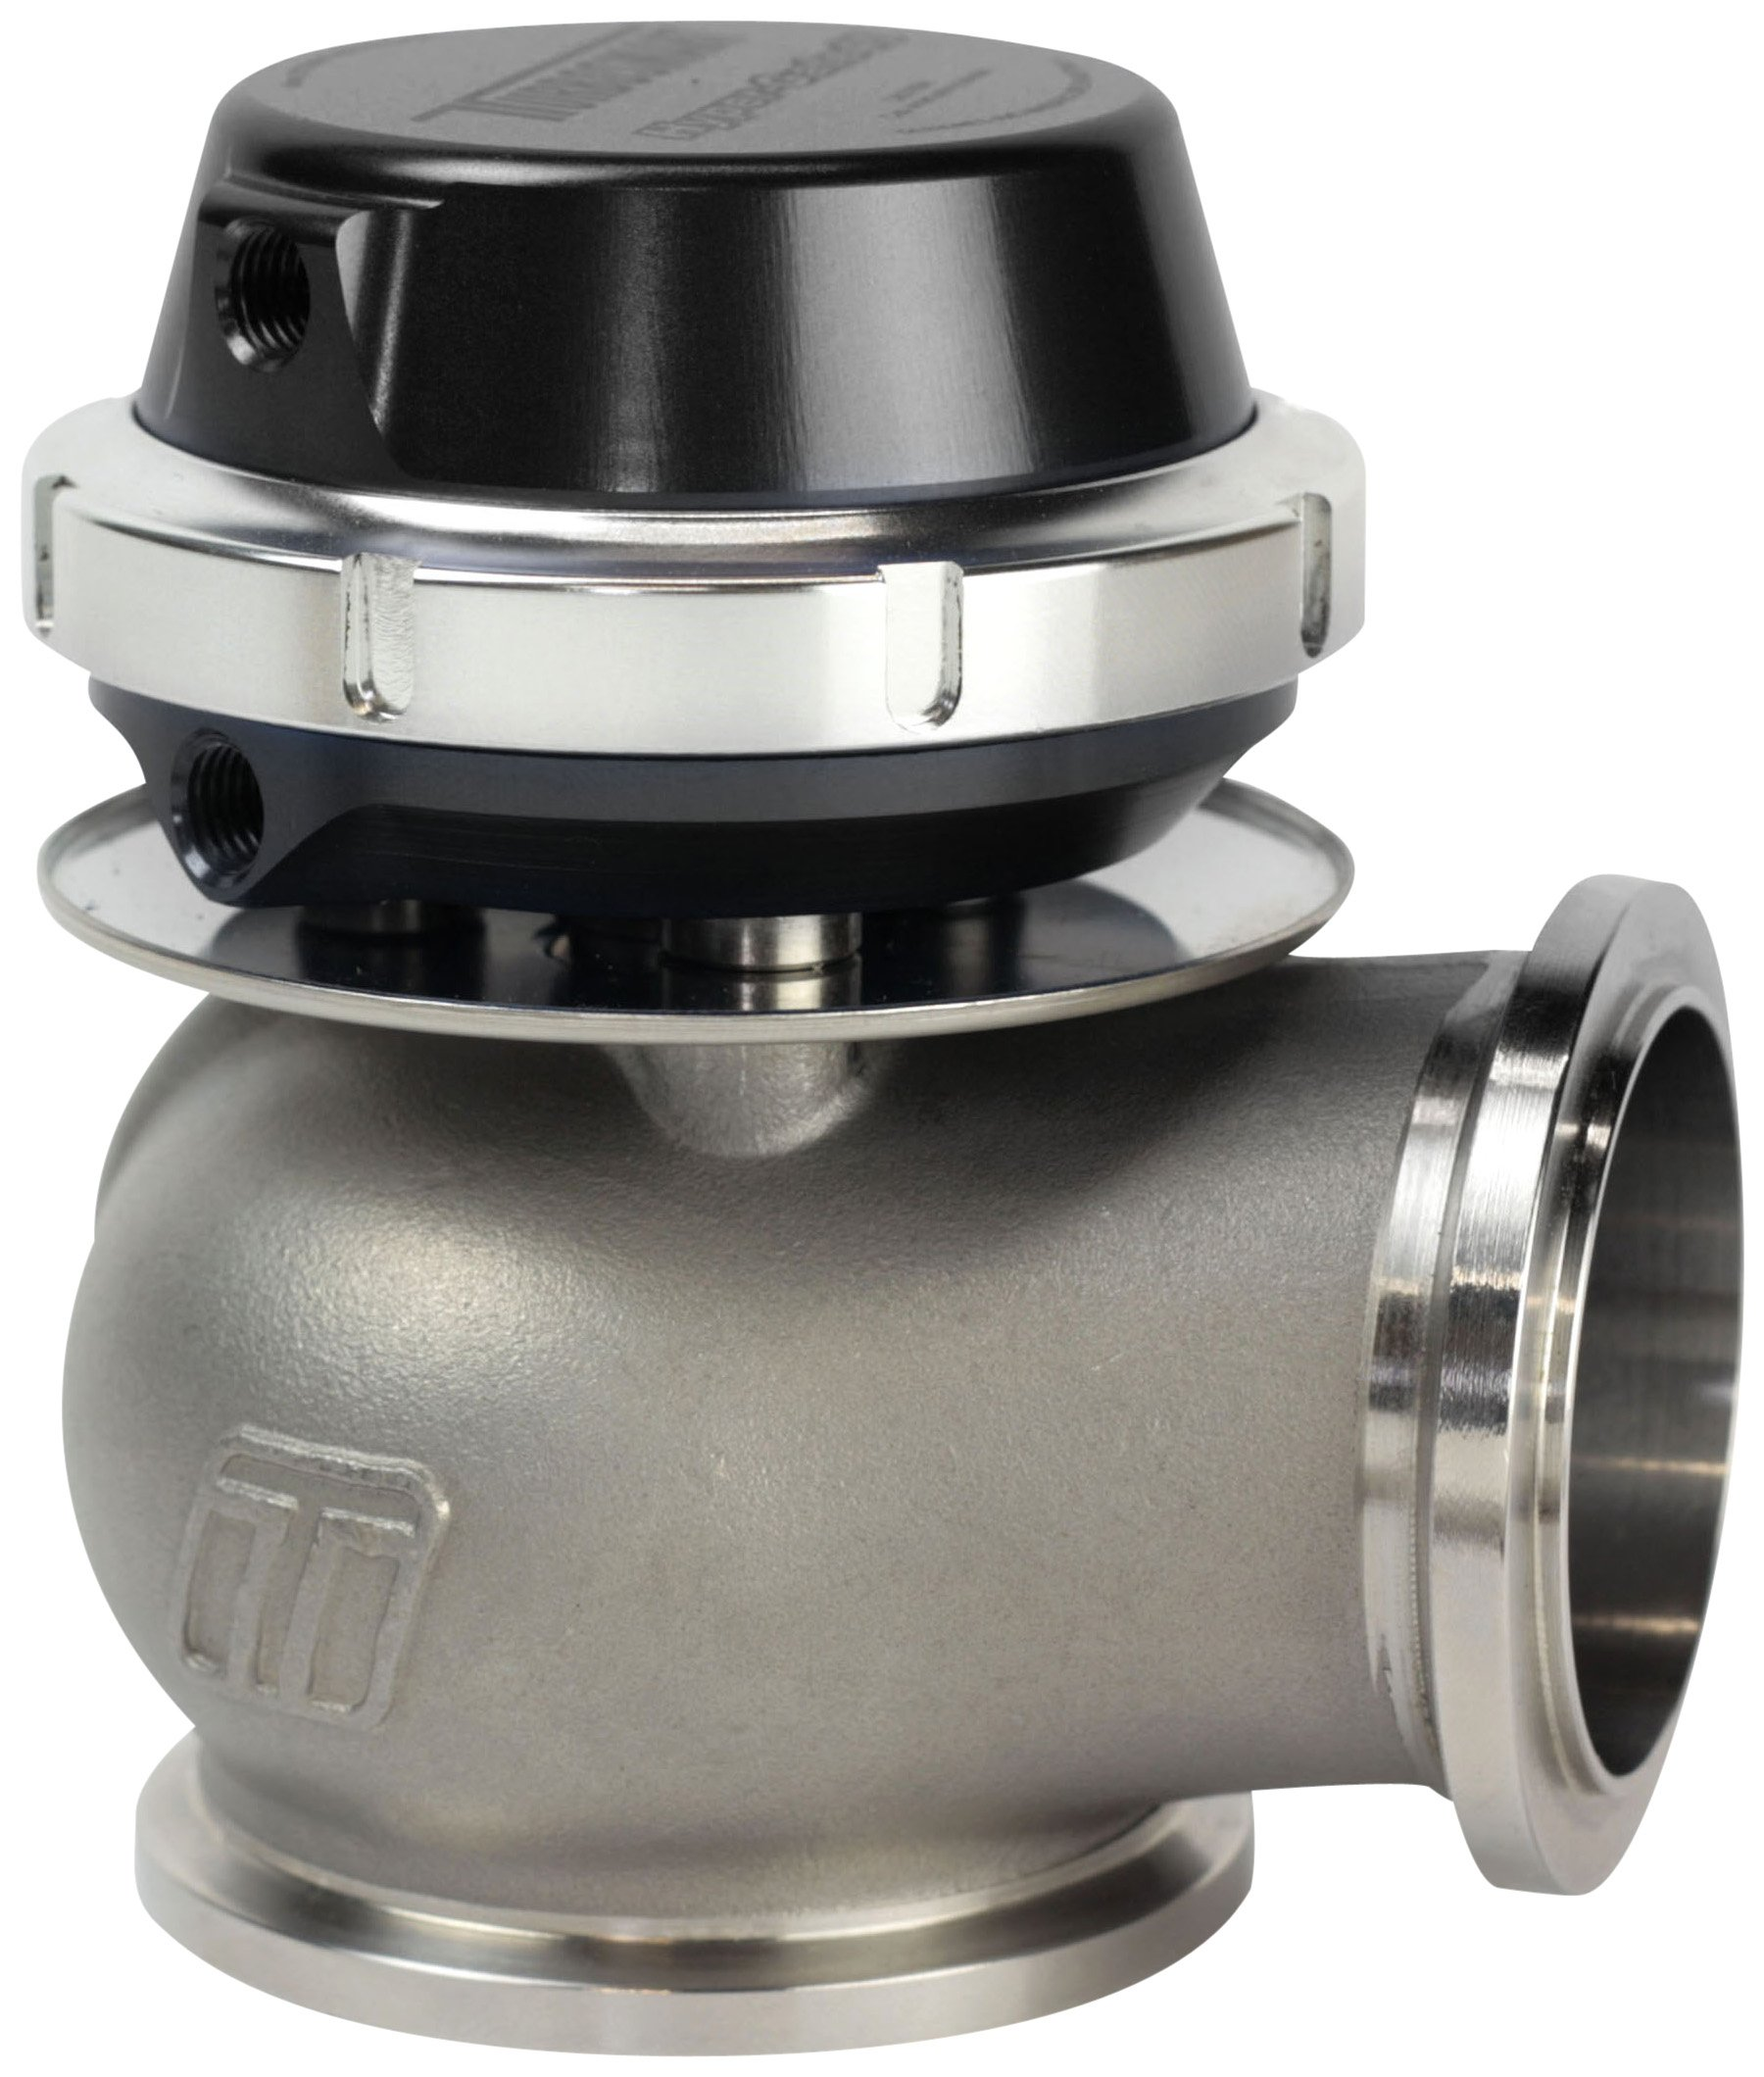 Turbosmart TS-0506-1041 Hyper-Gate45 Black 14 PSI WG45 2011 Wastegate,45 millimeter by Turbosmart